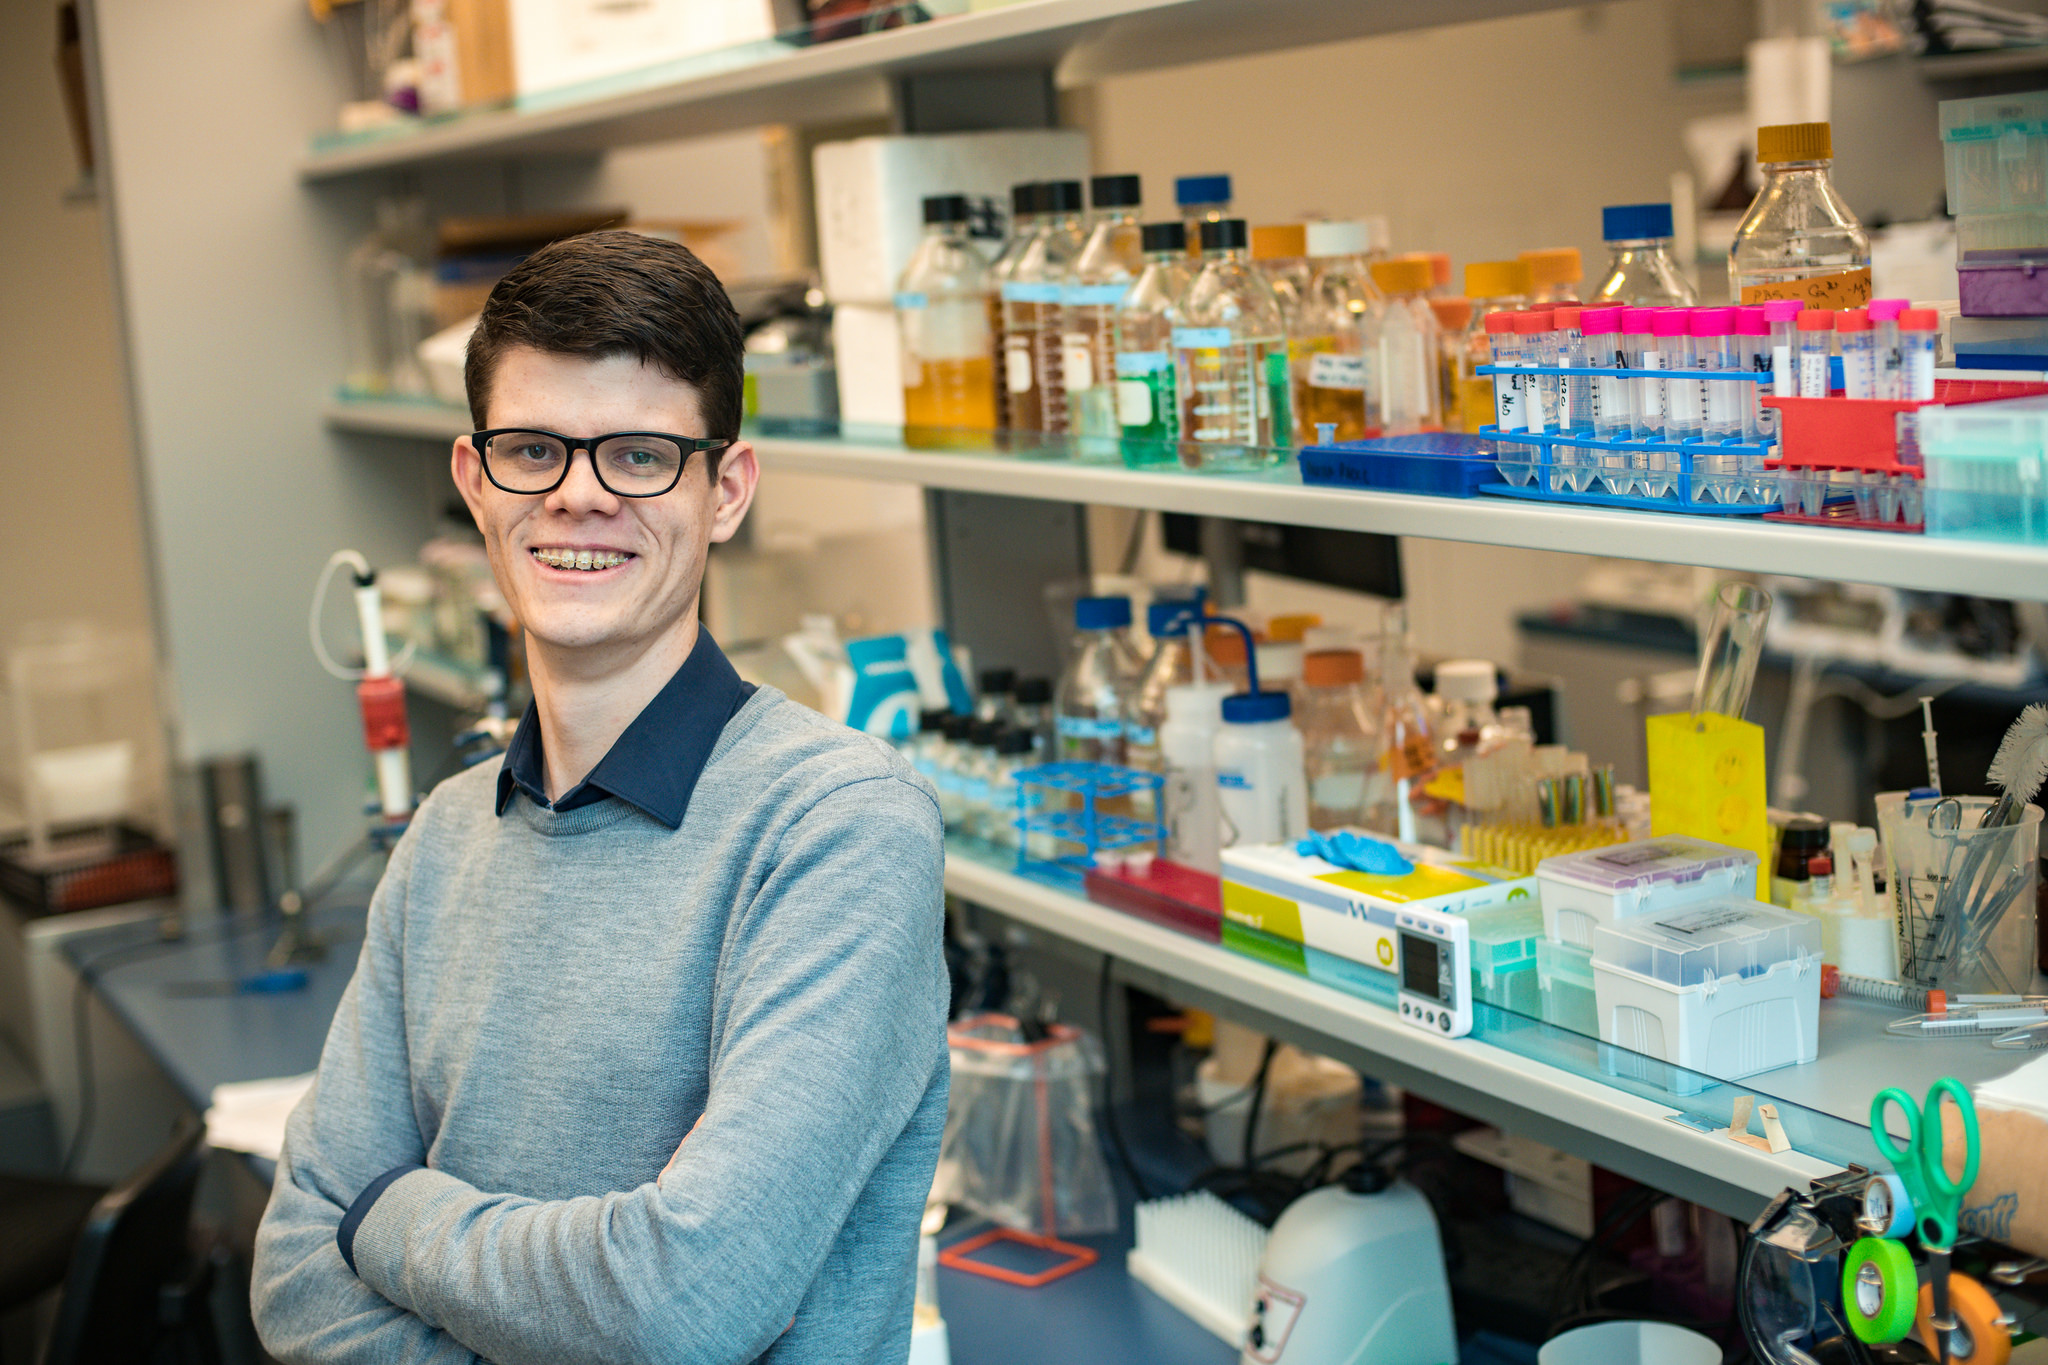 UFV Young Distinguished Alumni Andrew Alexander Winner Fights Scientific Battle Against Antibiotic Resistance